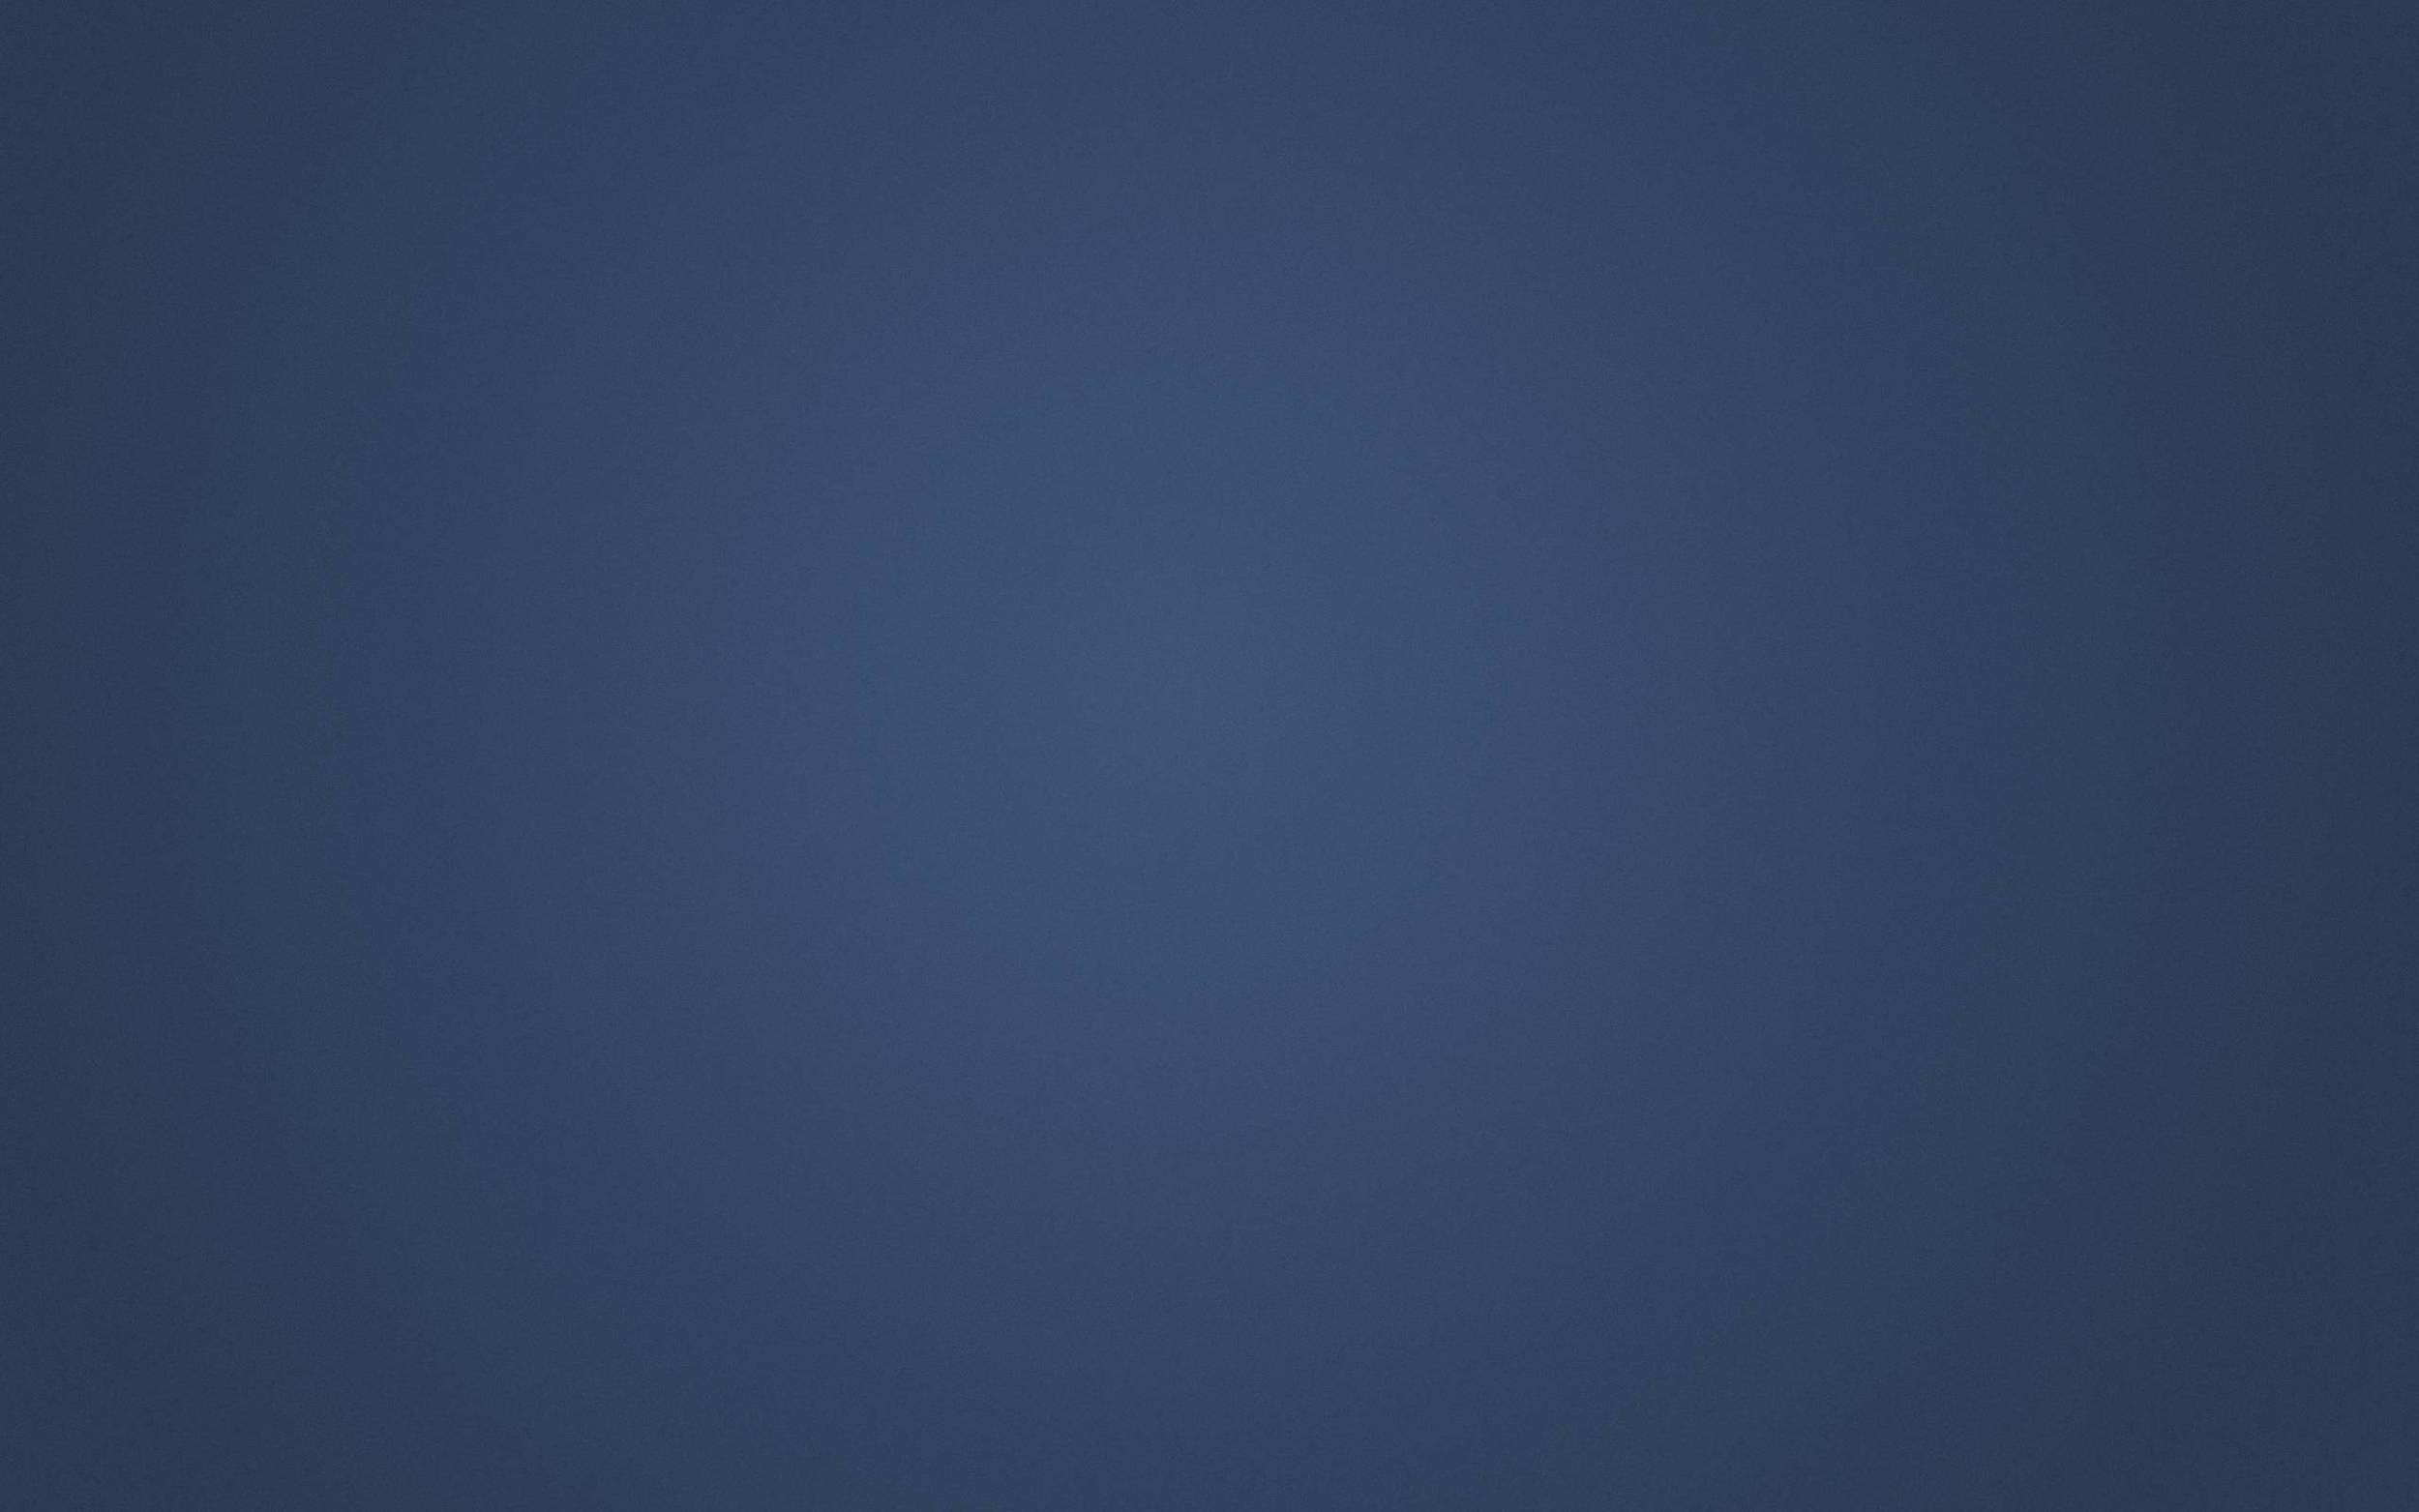 Blue-solid-color-wallpaper-hd-wallpapers